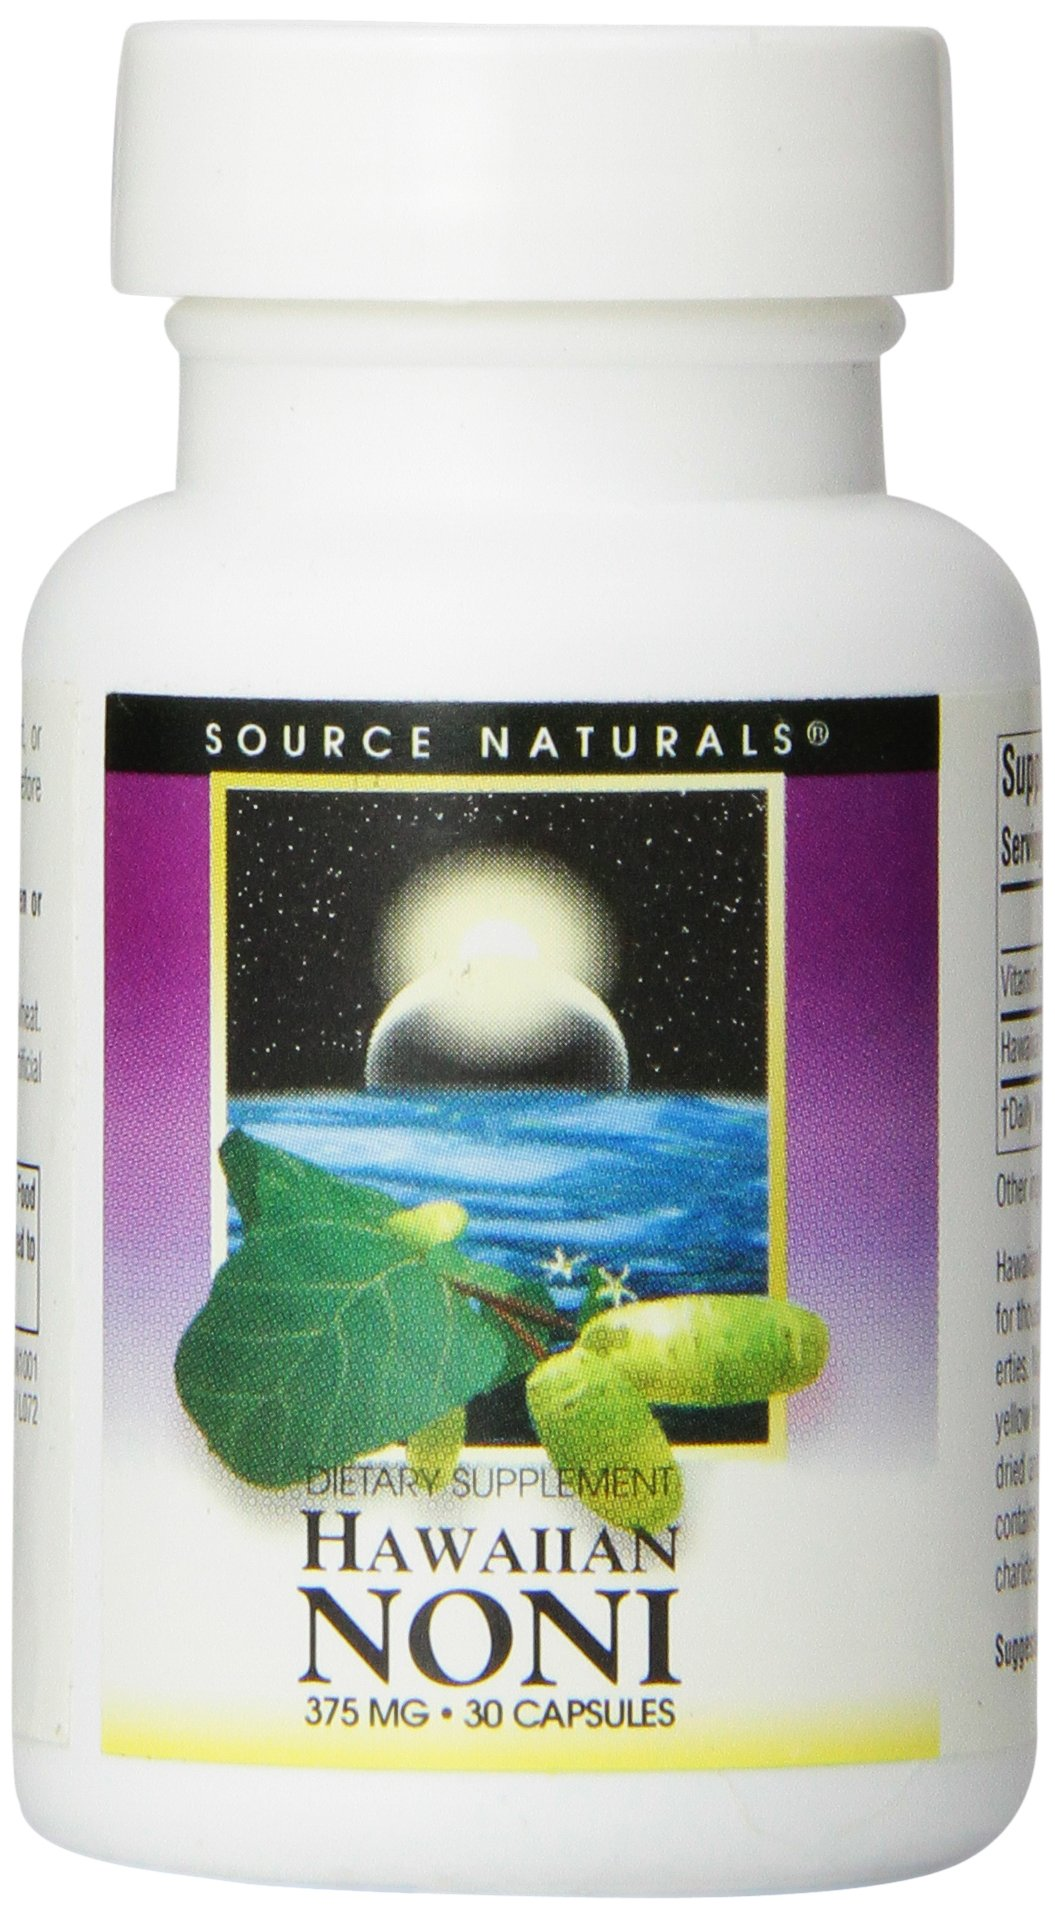 Source Naturals Hawaiian Noni 375mg, Supports Healthy Living, 30 Capsules